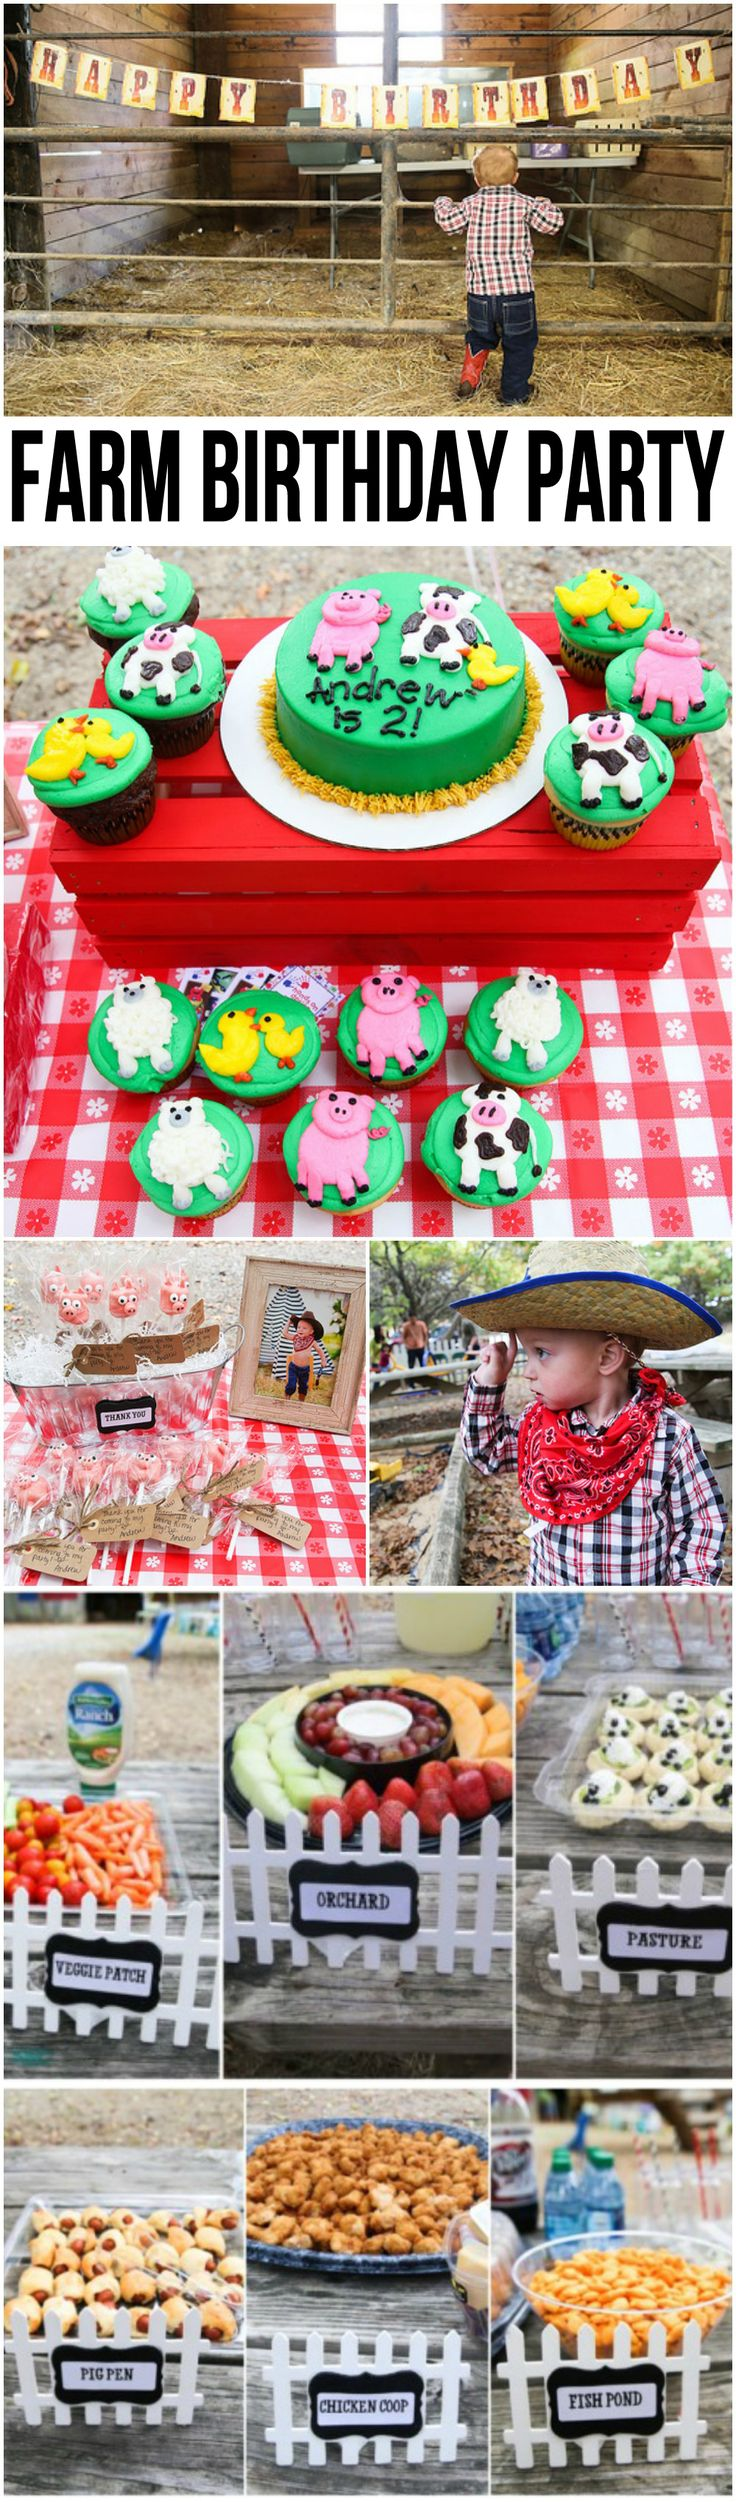 I've been looking forward to Andrew's 2nd Birthday Party for weeks. This was the most fun I've had planning a party, and I think it turned out so cute! I'm so excited to share all the details with you! We had the party at Grisham Farms Petting Zoo in McKinney. They were super-easy to work …